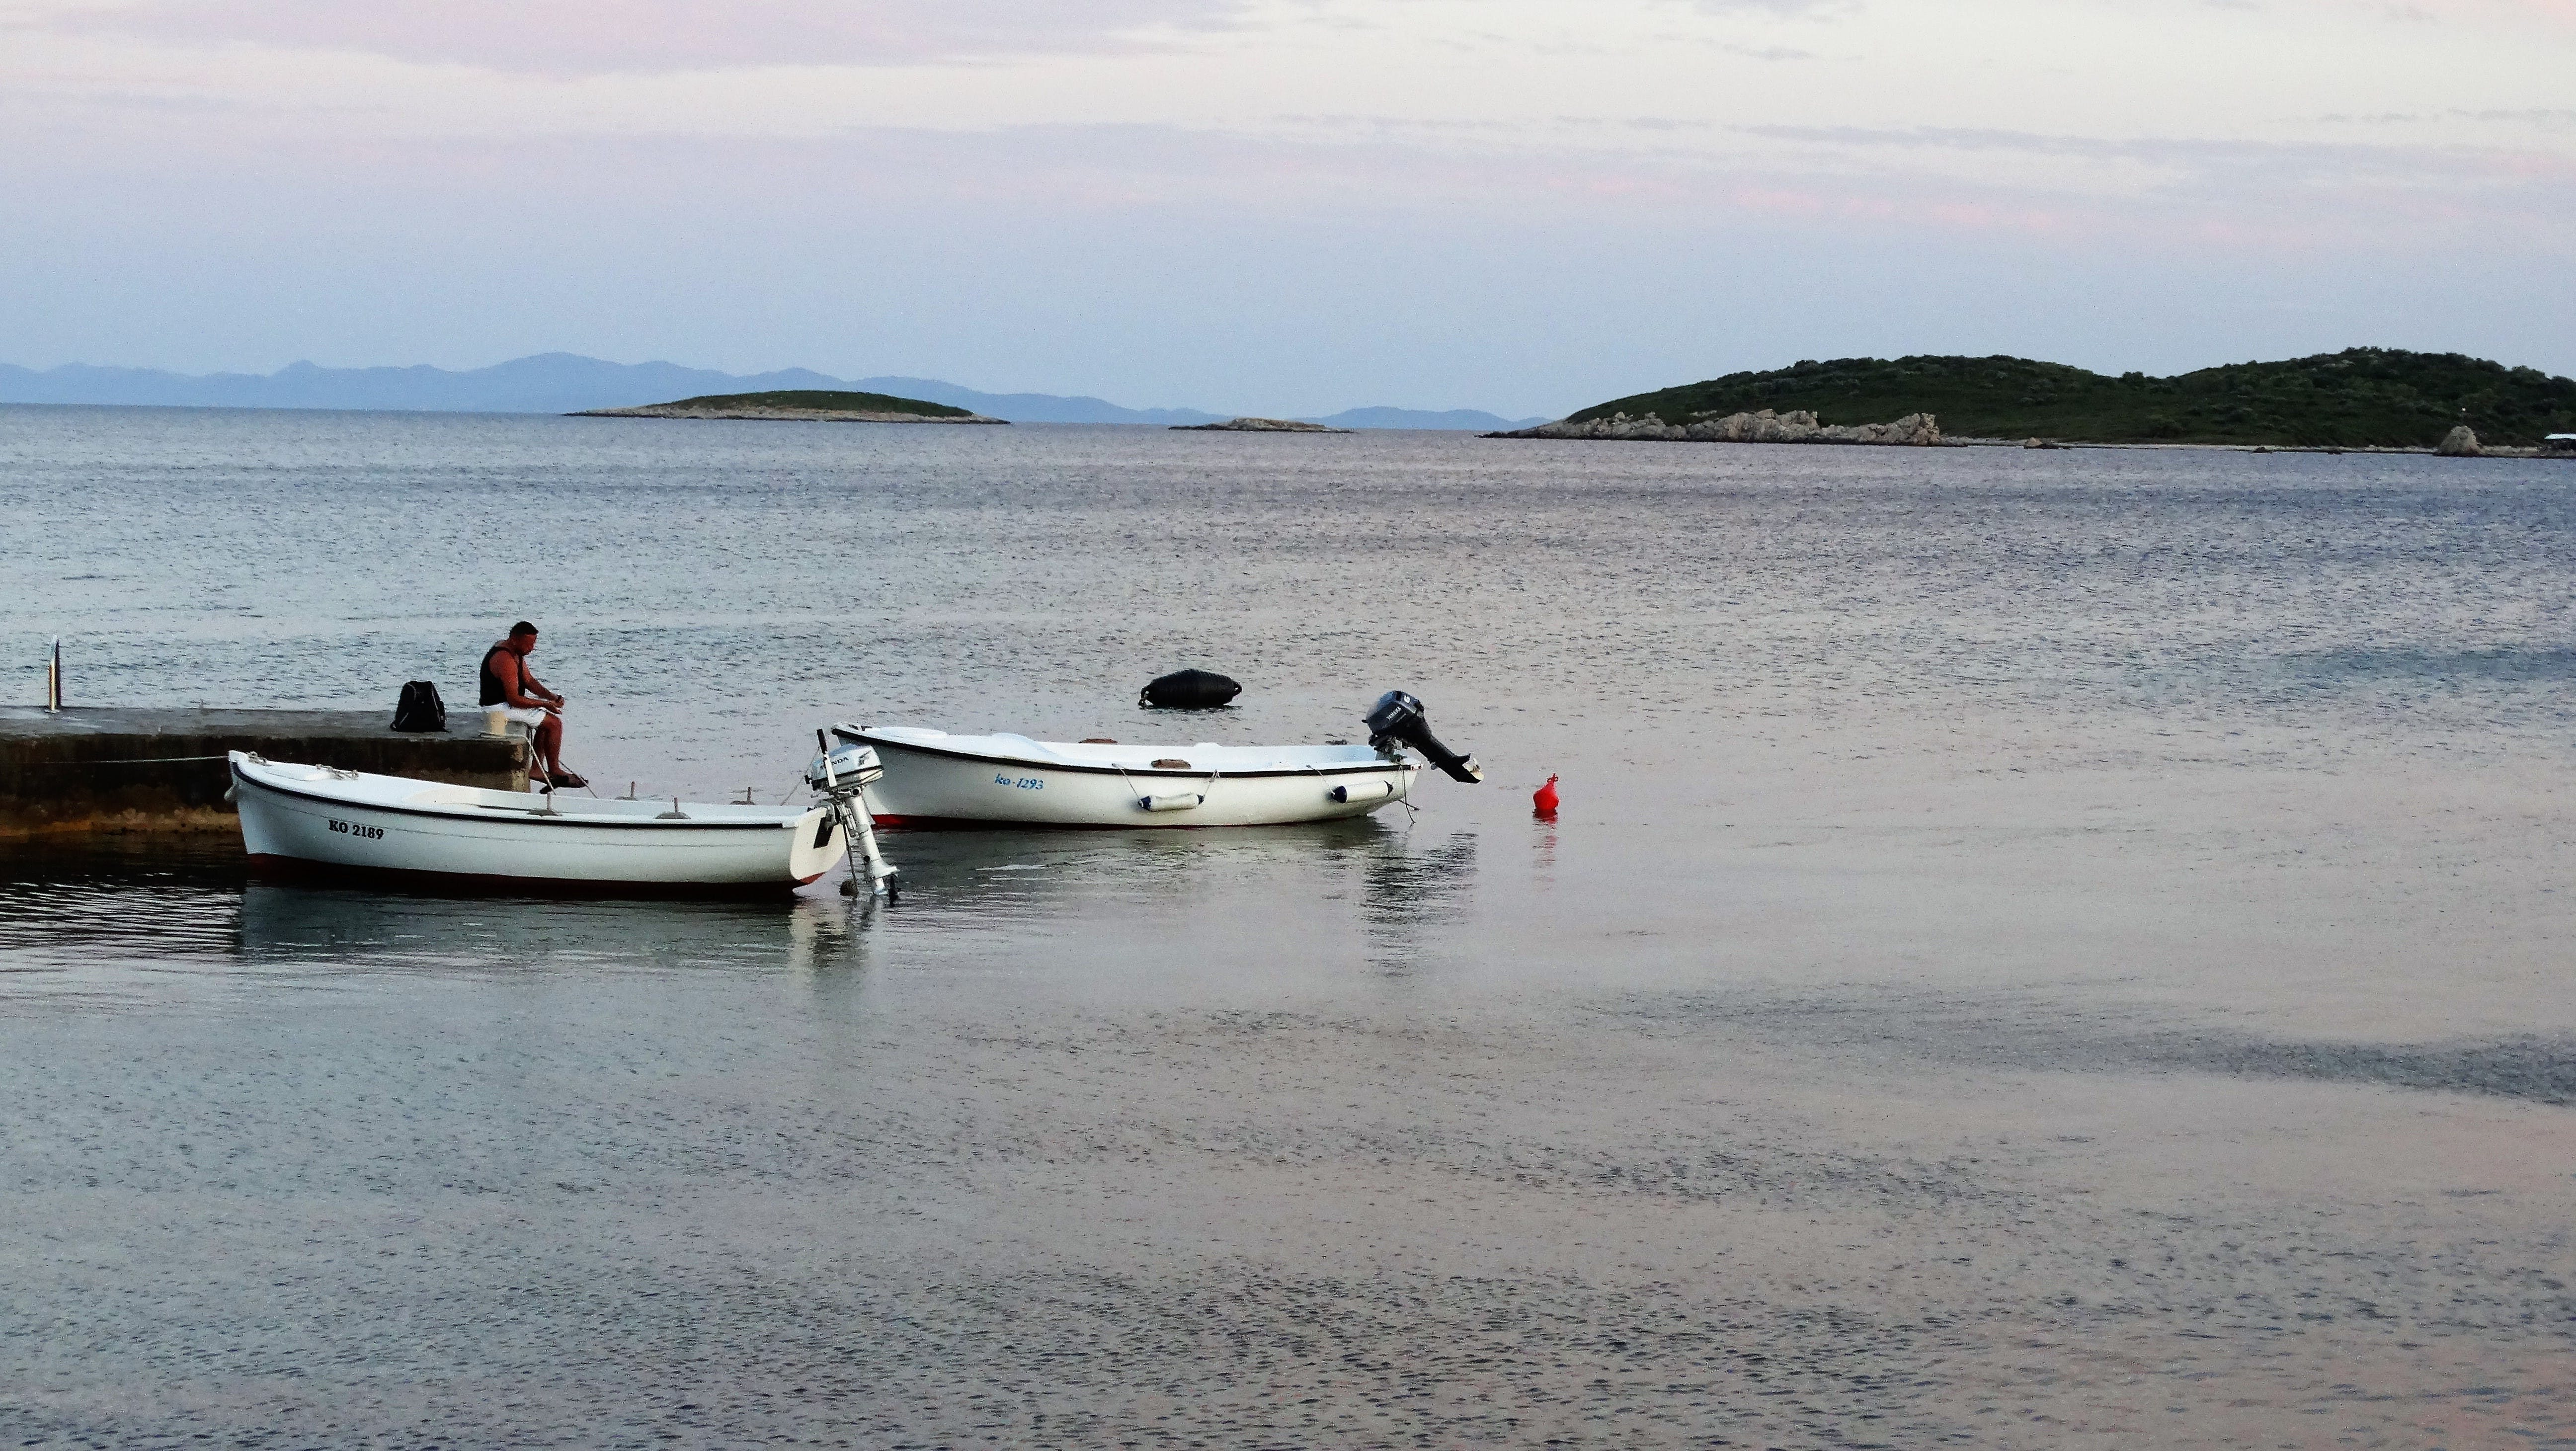 2 White Boat on Beach during Daytime